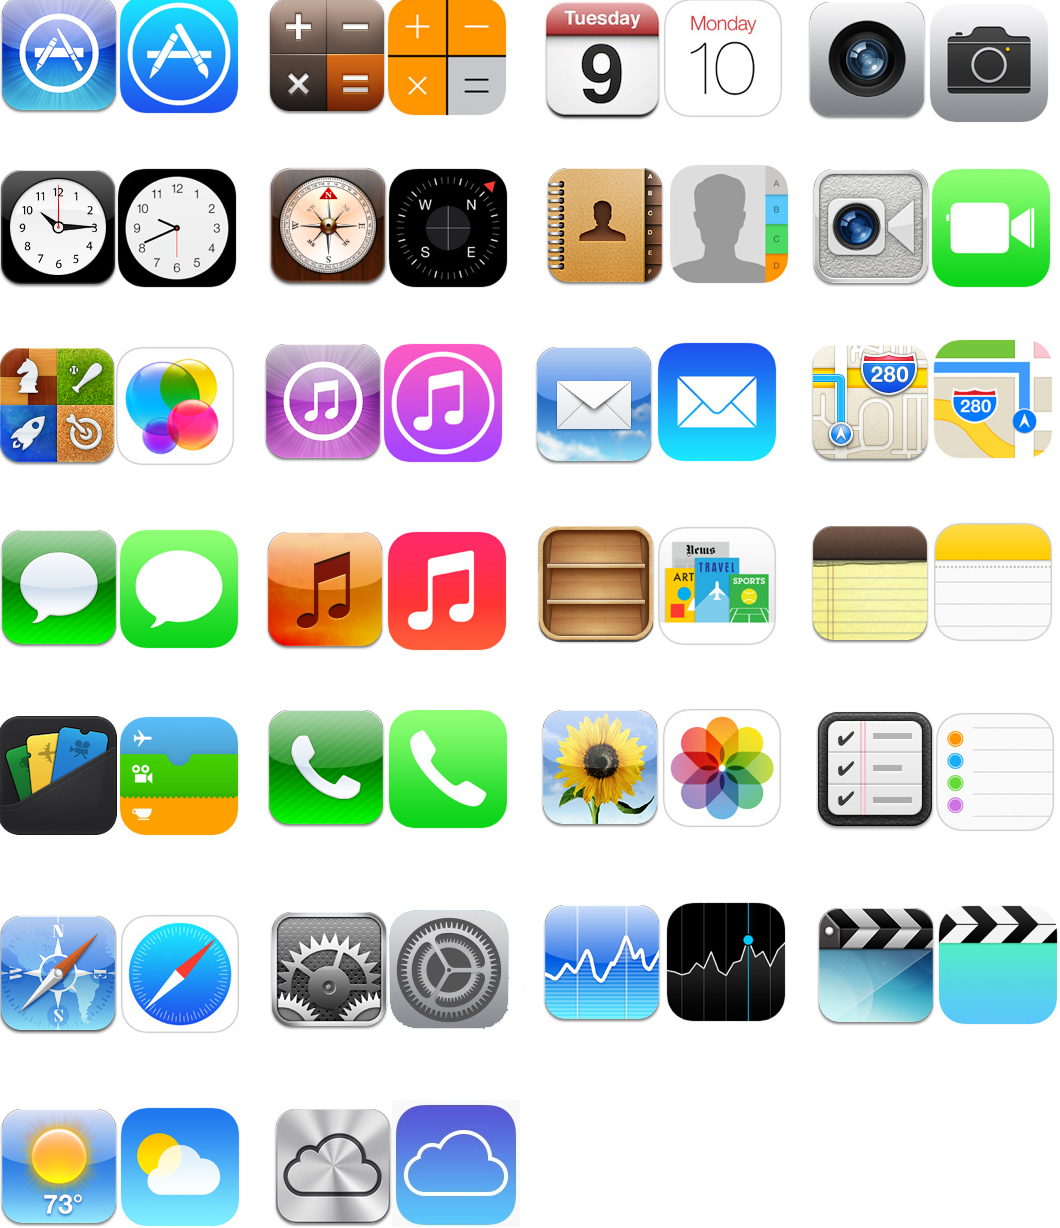 Image gallery icons ios 7 iphone apps for Picture apps for iphone